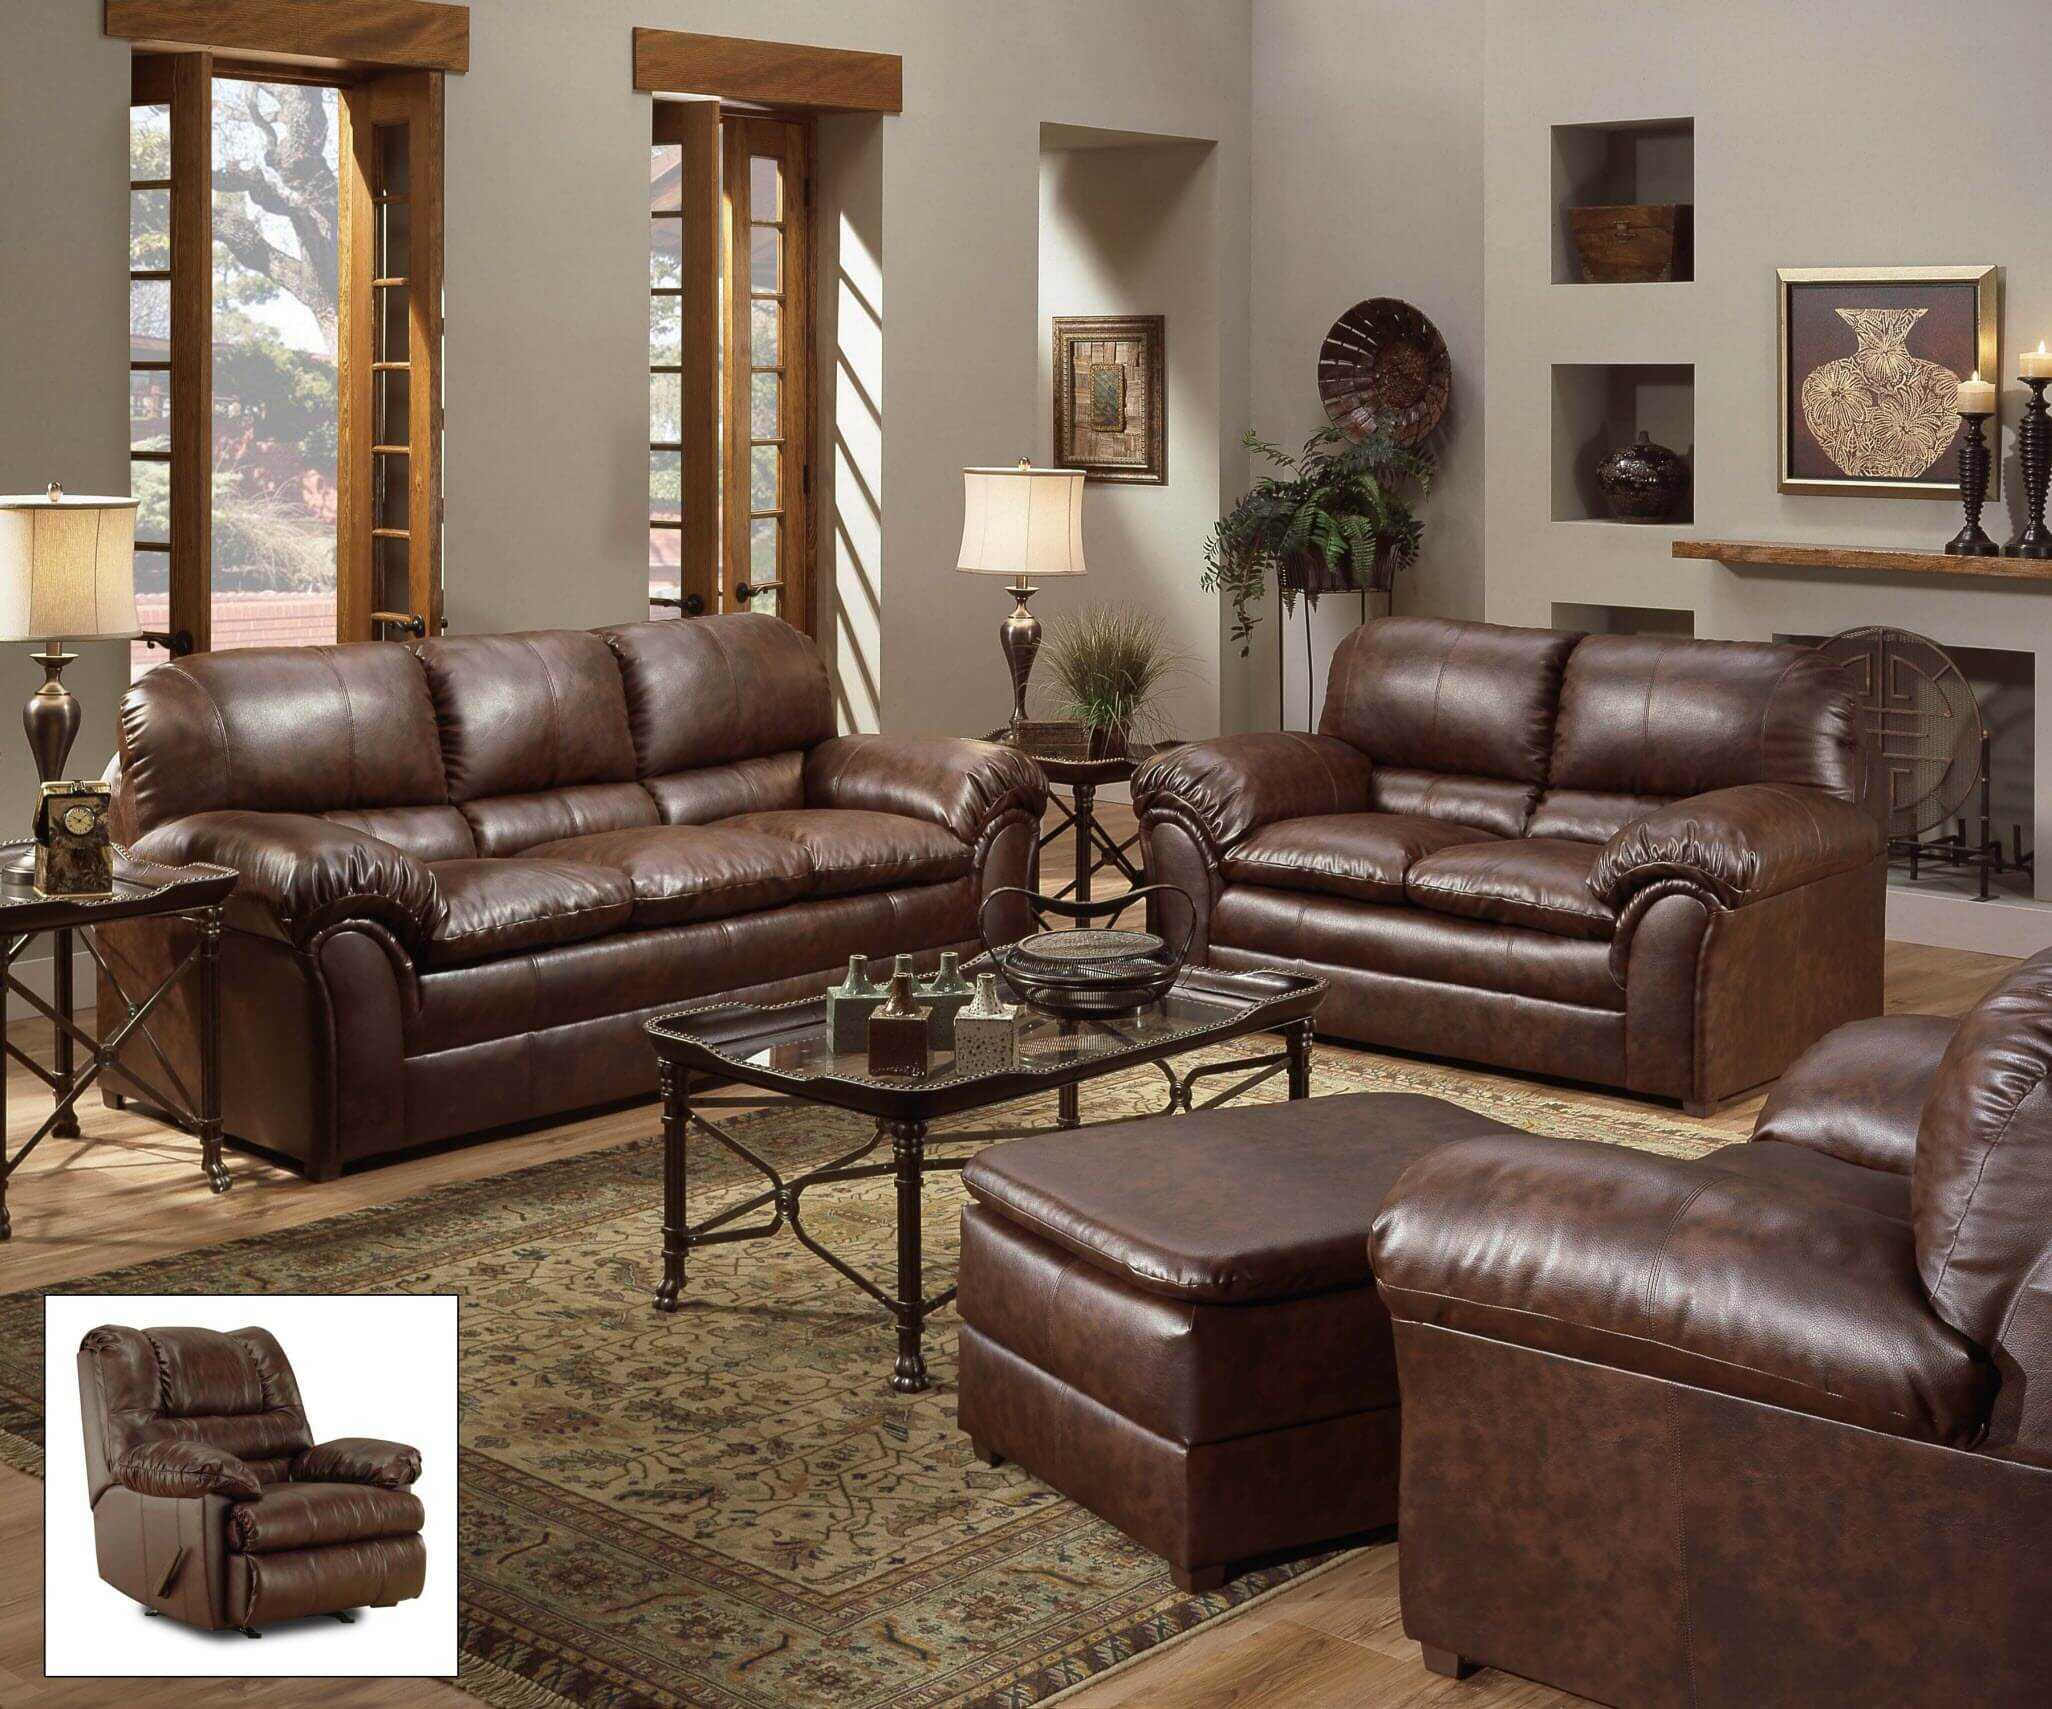 motion sofa set wooden under 10000 geneva mahogany and loveseat | living room sets